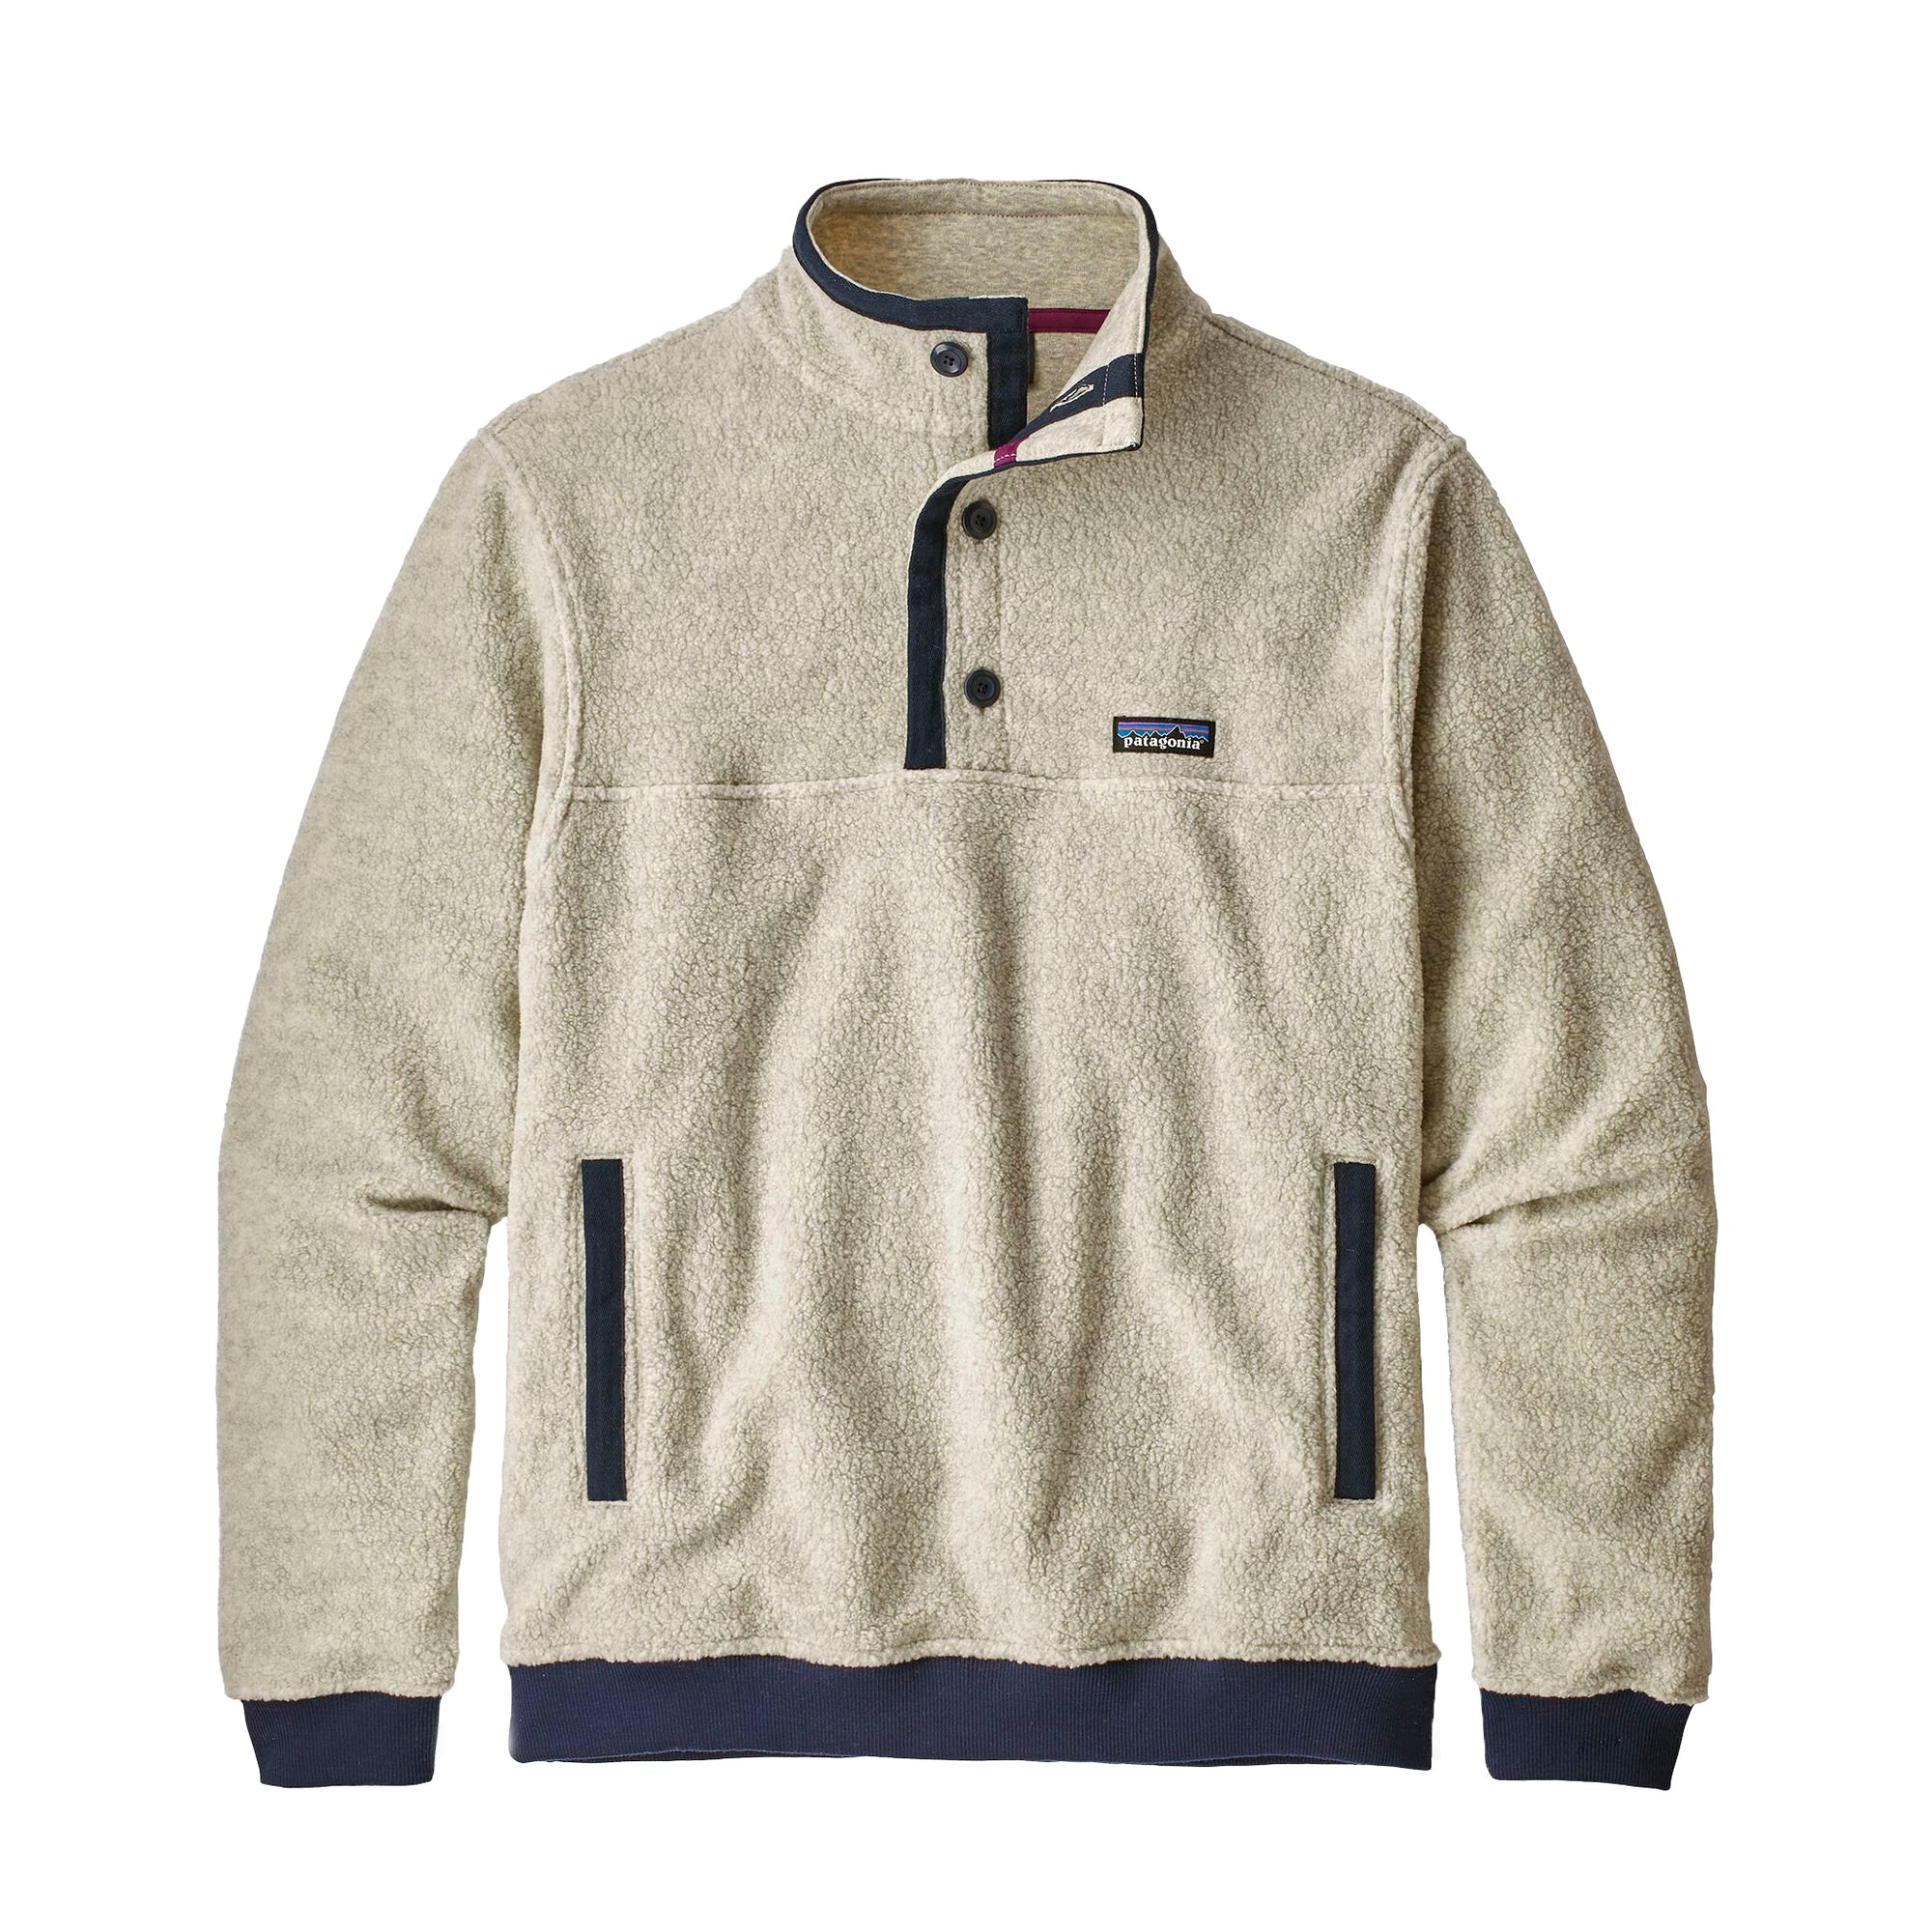 Patagonia Shearling Button P/O: Oatmeal - The Union Project